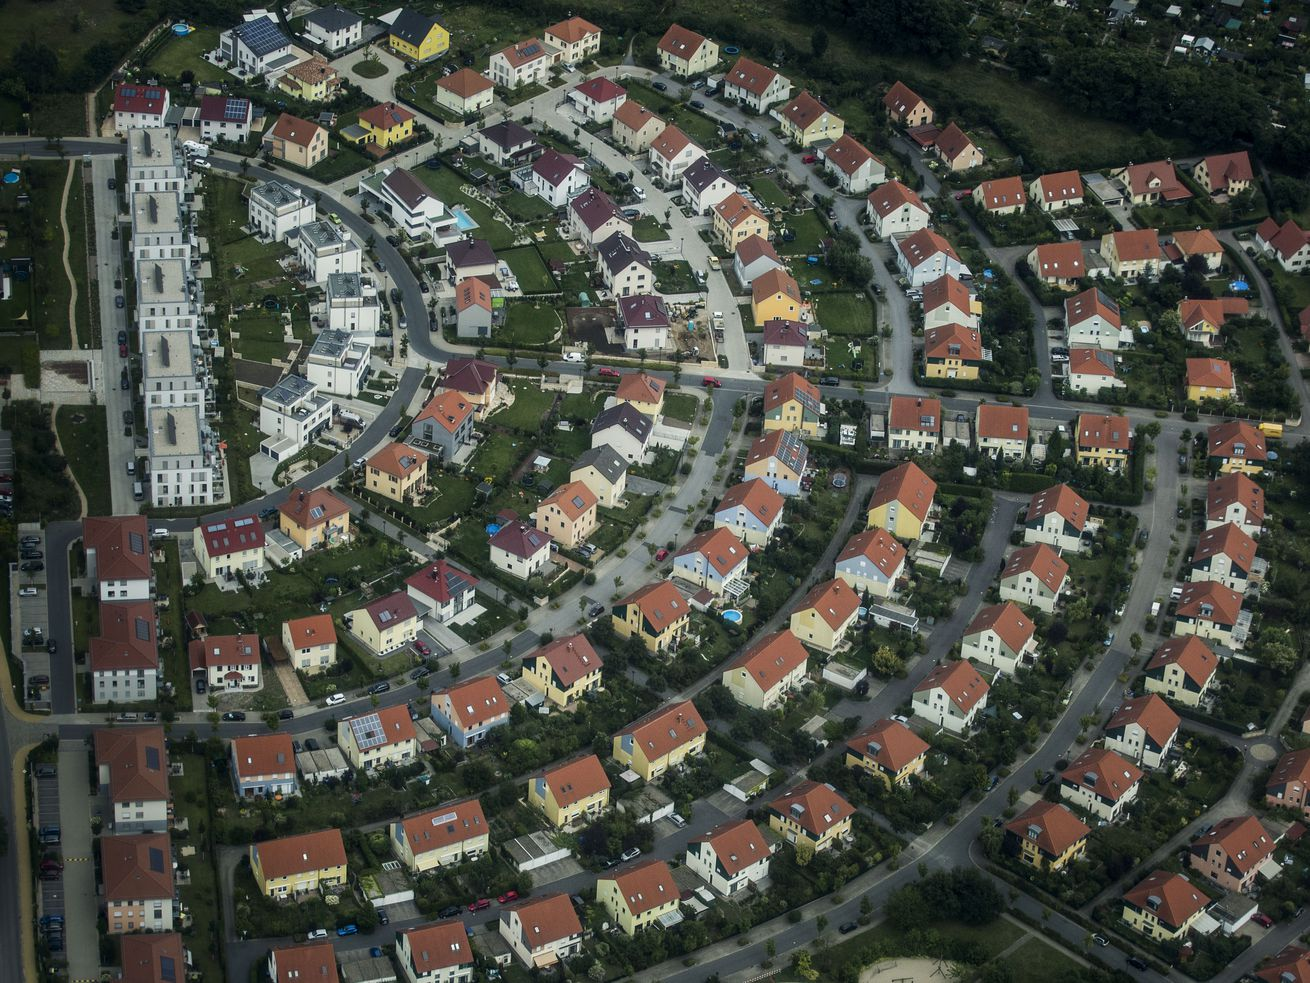 An aerial photo of a housing estate in Dresden, Germany.